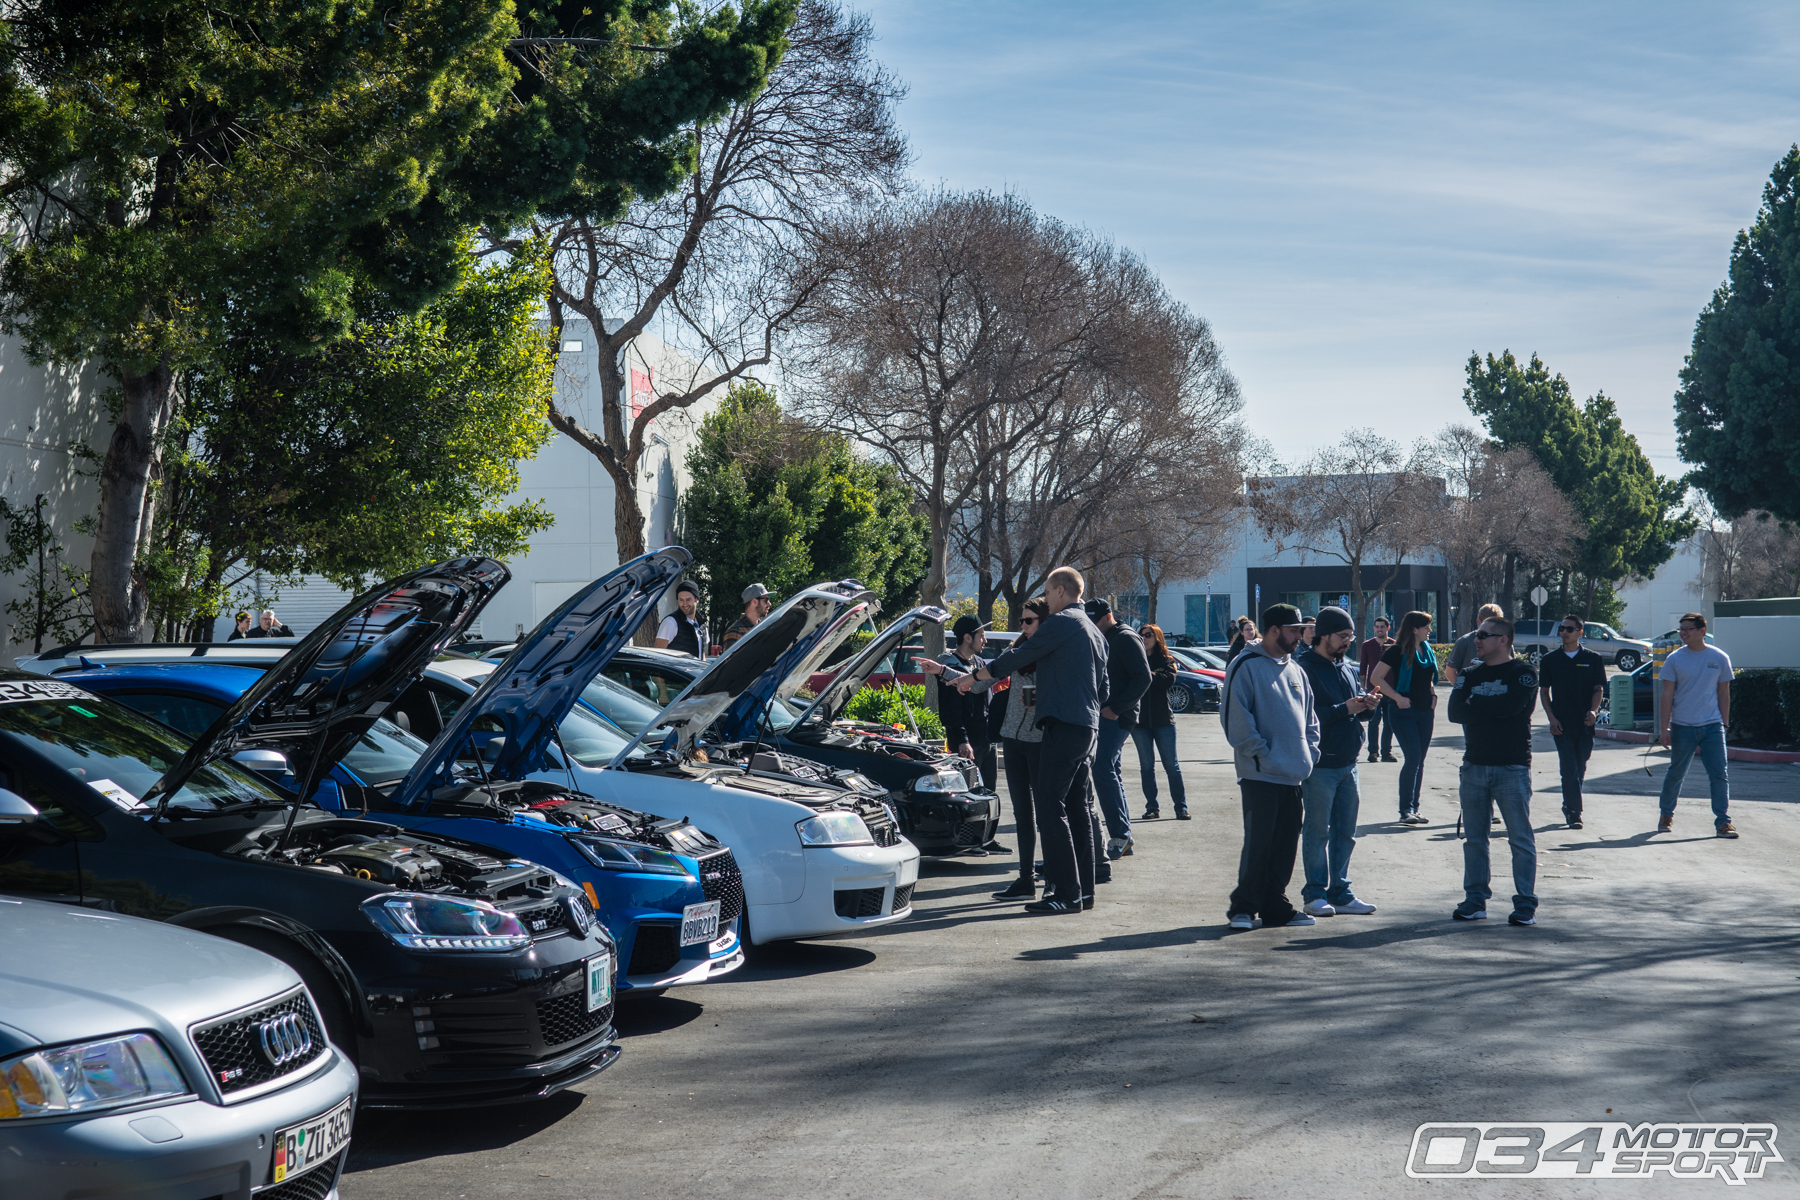 034Motorsport WinterFest Car Show